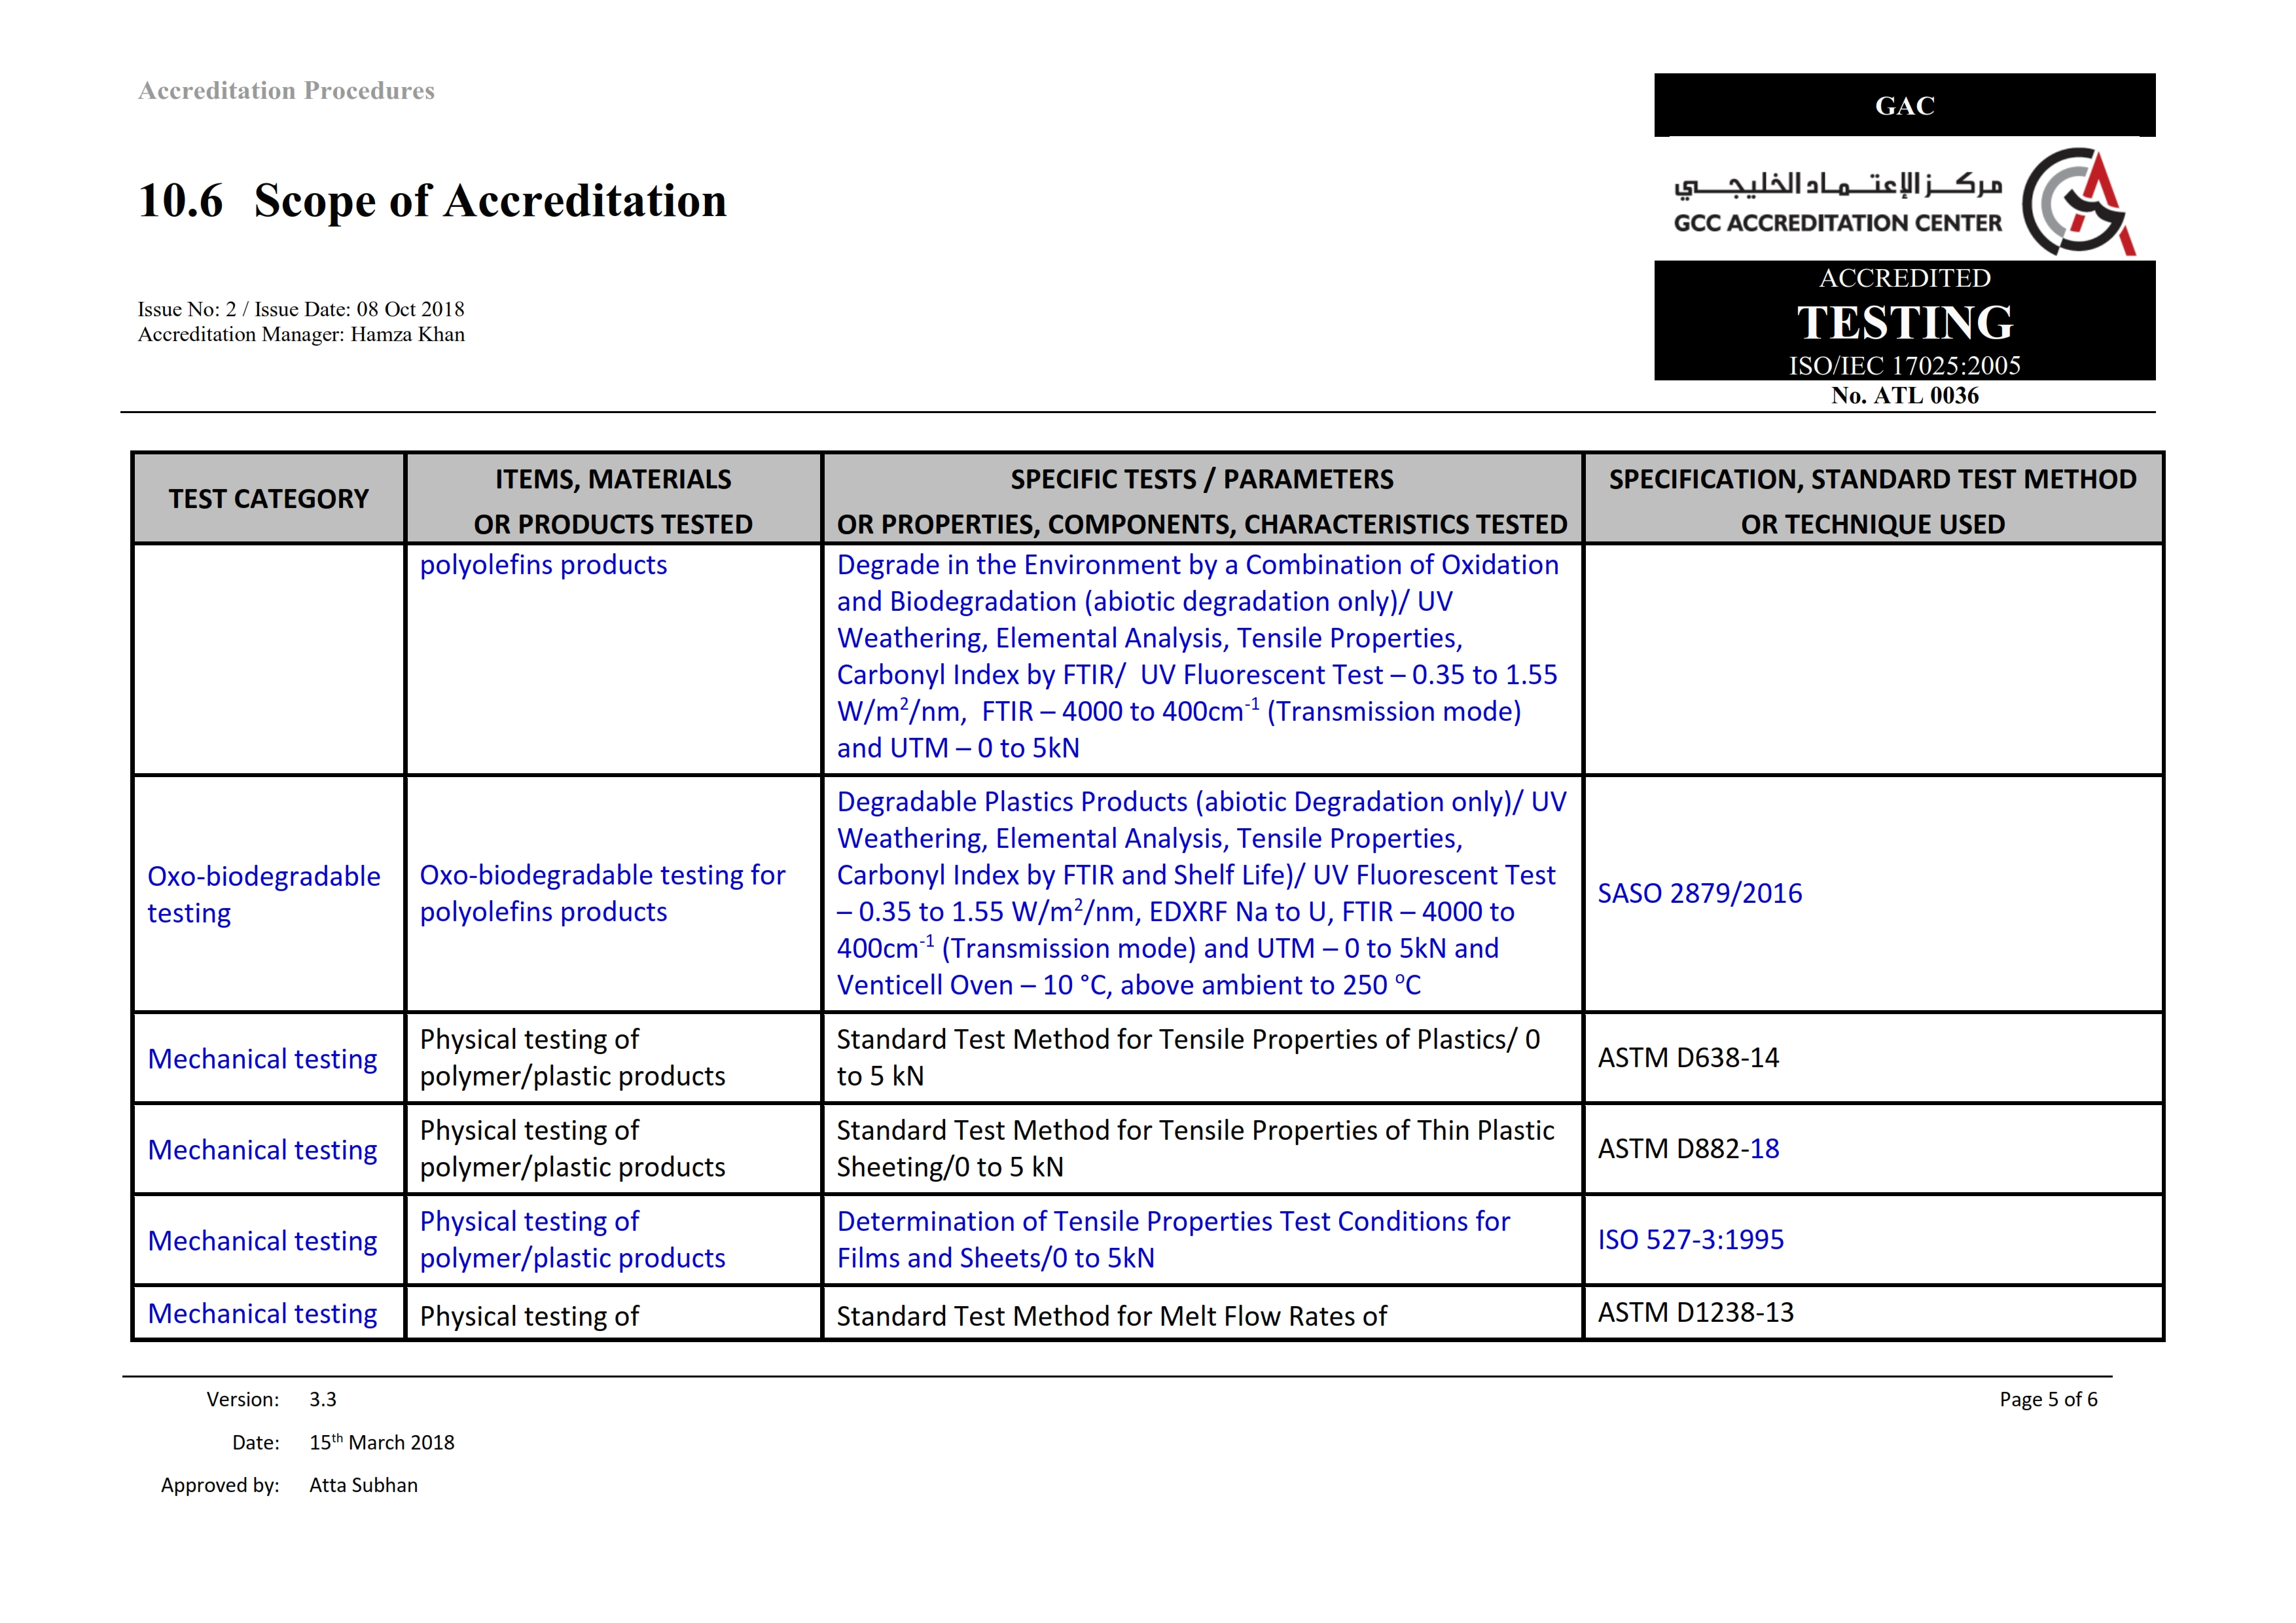 GAC Scope of Accreditation- v.3.3 -Testing - EnerPlastic LLC_005